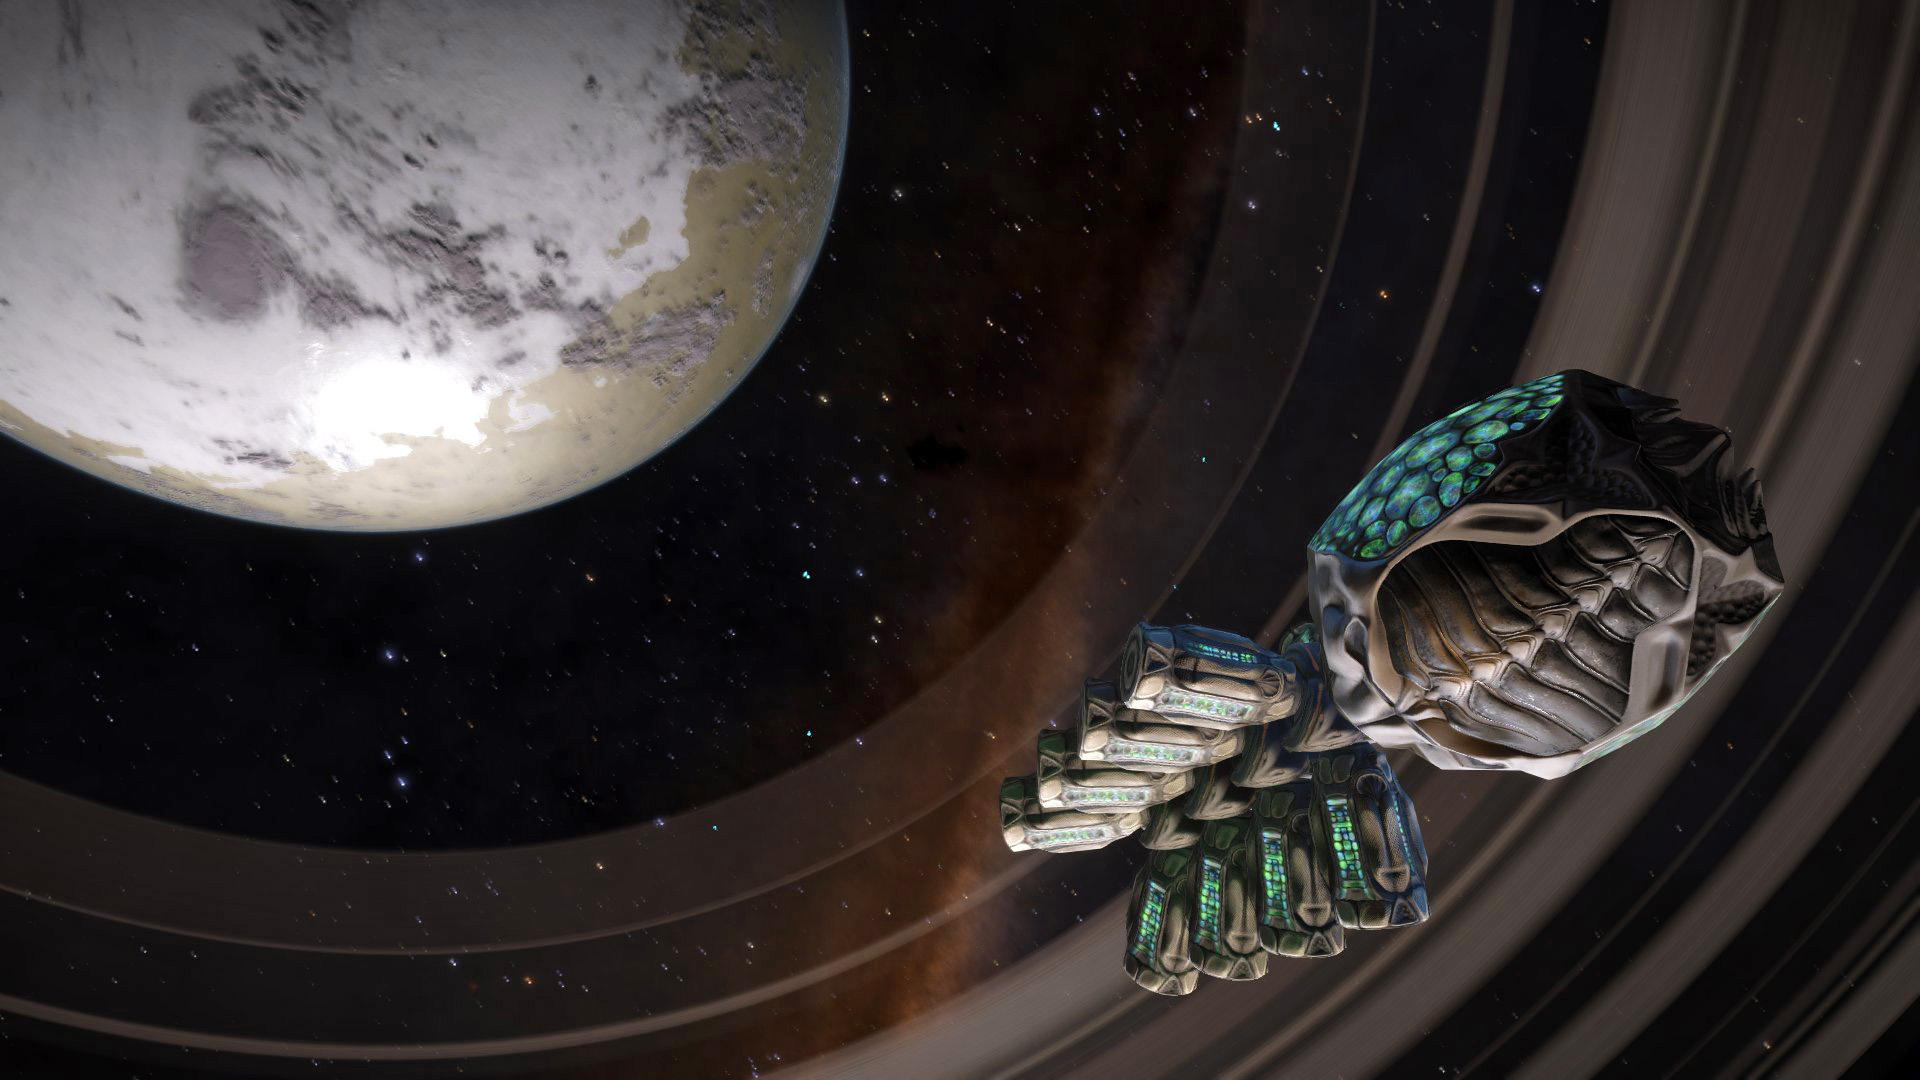 an unknown artefact in orbit of a ringed planet